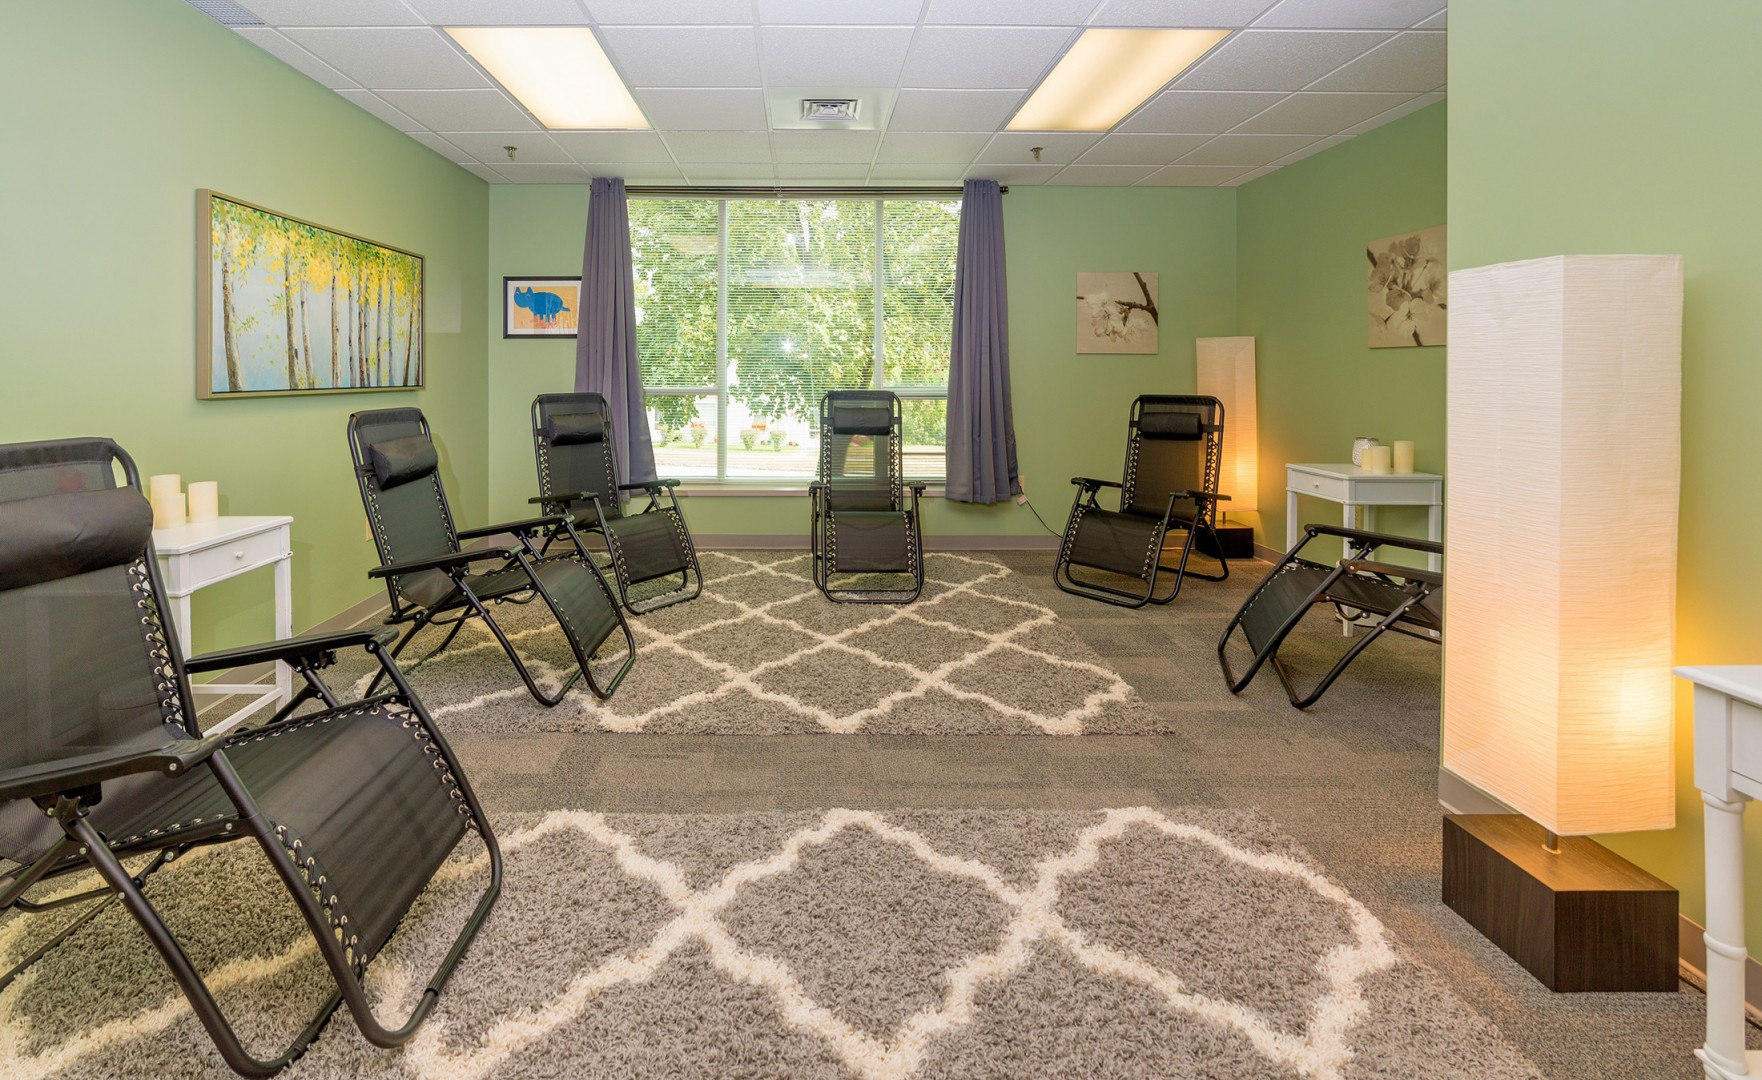 Acupuncture In New Hampshire - Acupuncture Acupressure Points